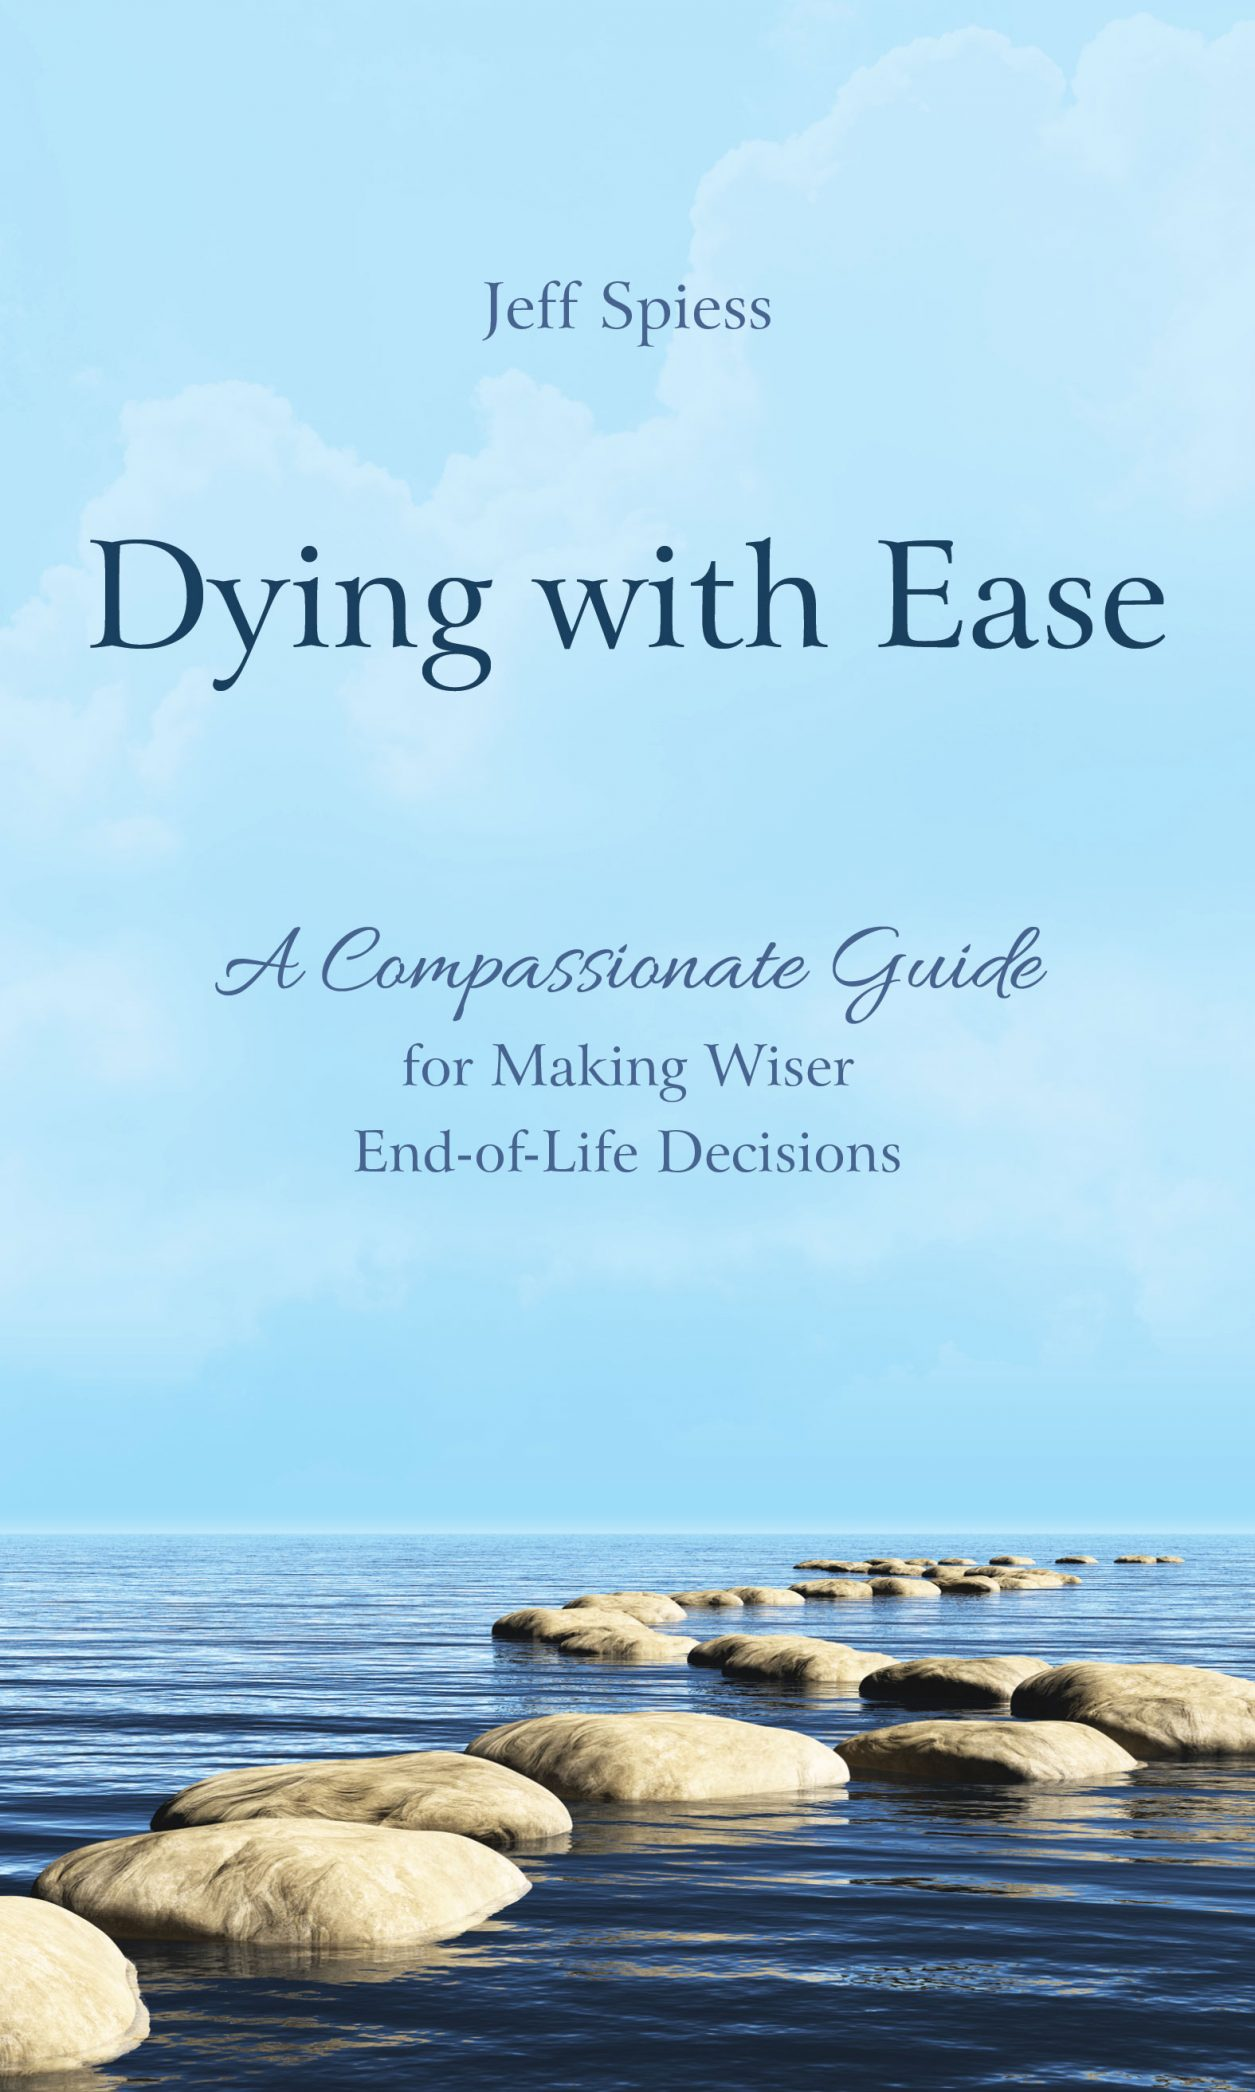 Dying with Ease: A Compassionate Guide for Making Wiser End-of-Life Decisions by Jeff Spiess